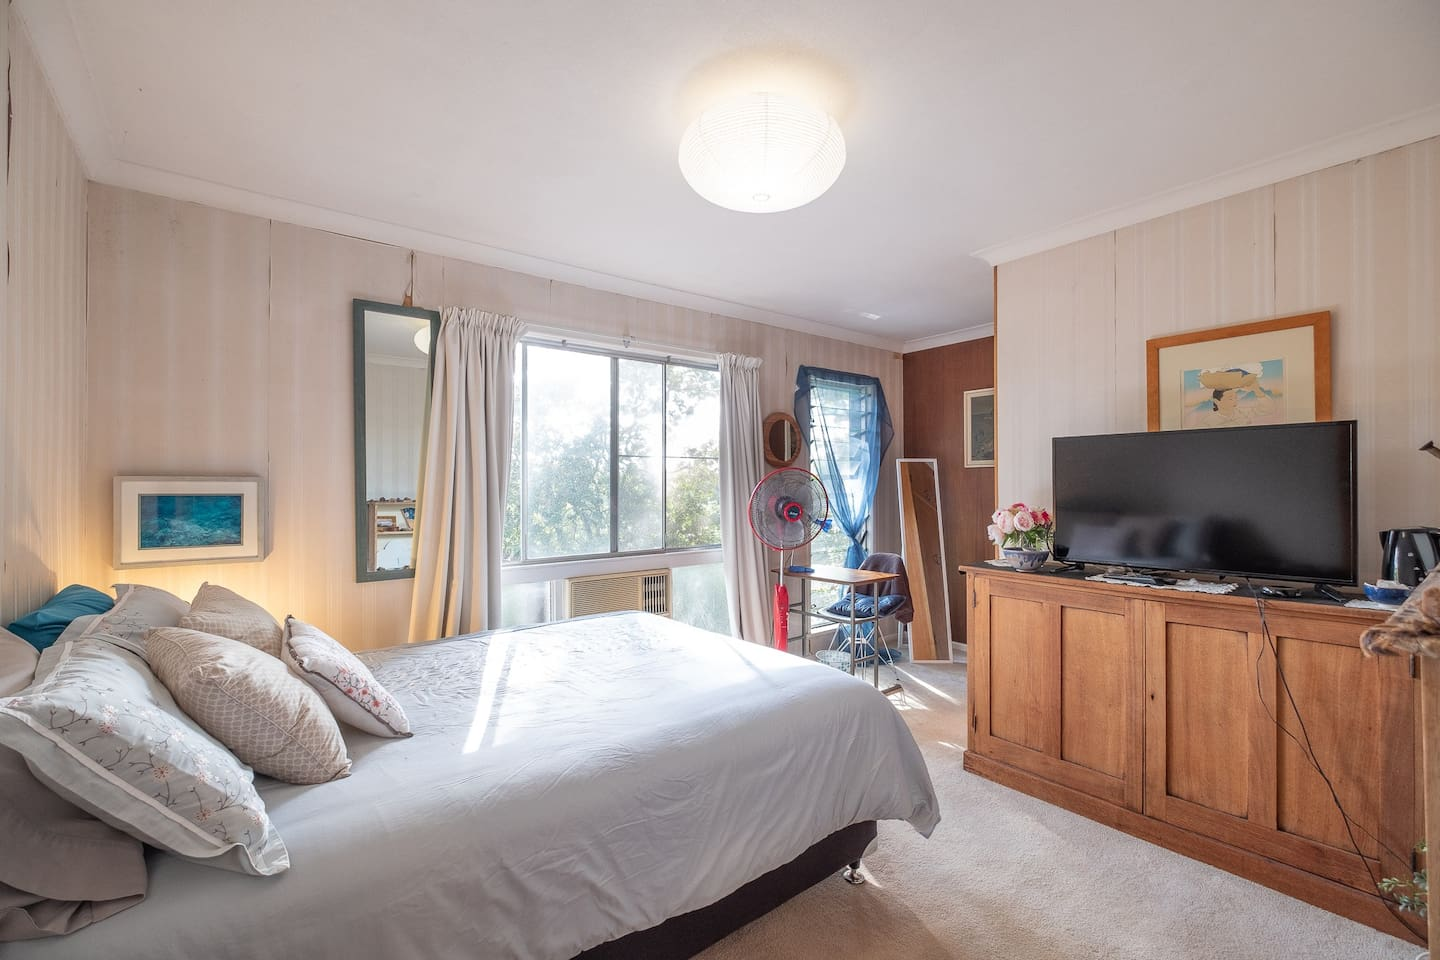 New Comfortable Queen mattress, luxury sheets, remote control HD Smart TV, remote control reverse cycle air conditioning, view of trees with  Mt Coot-tha in the distance. Leading onto ensuite with shower, sink, toilet, built-in robes, and mirror.